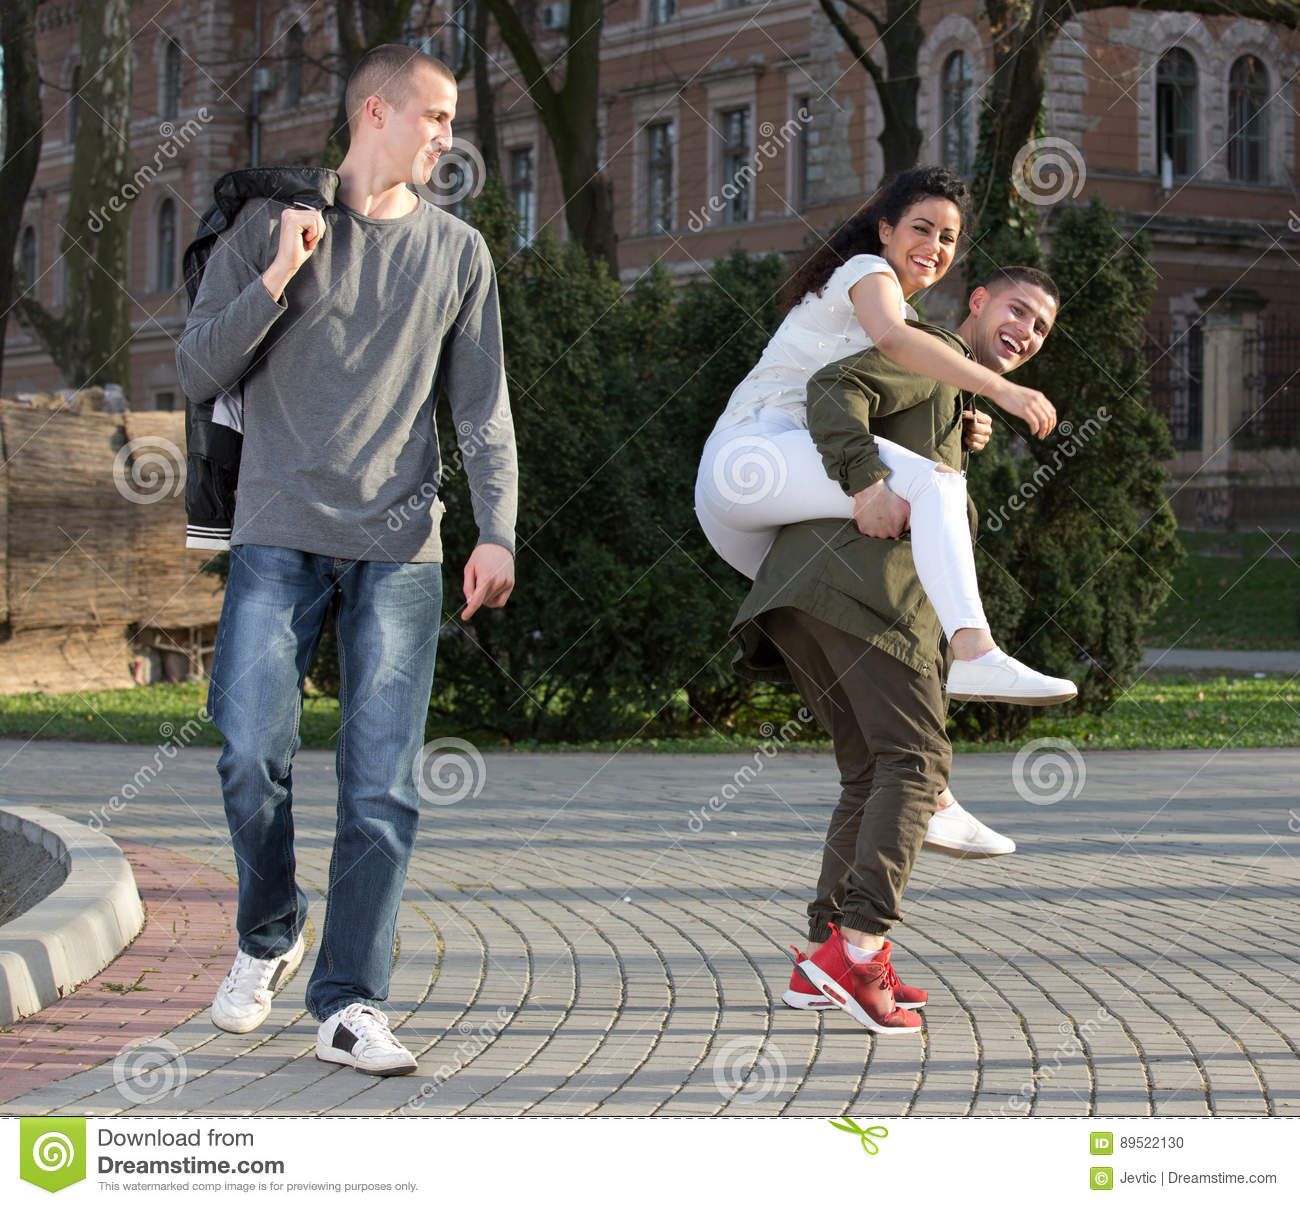 Students Having Fun Stock Photo. Image Of Smiling, Happy